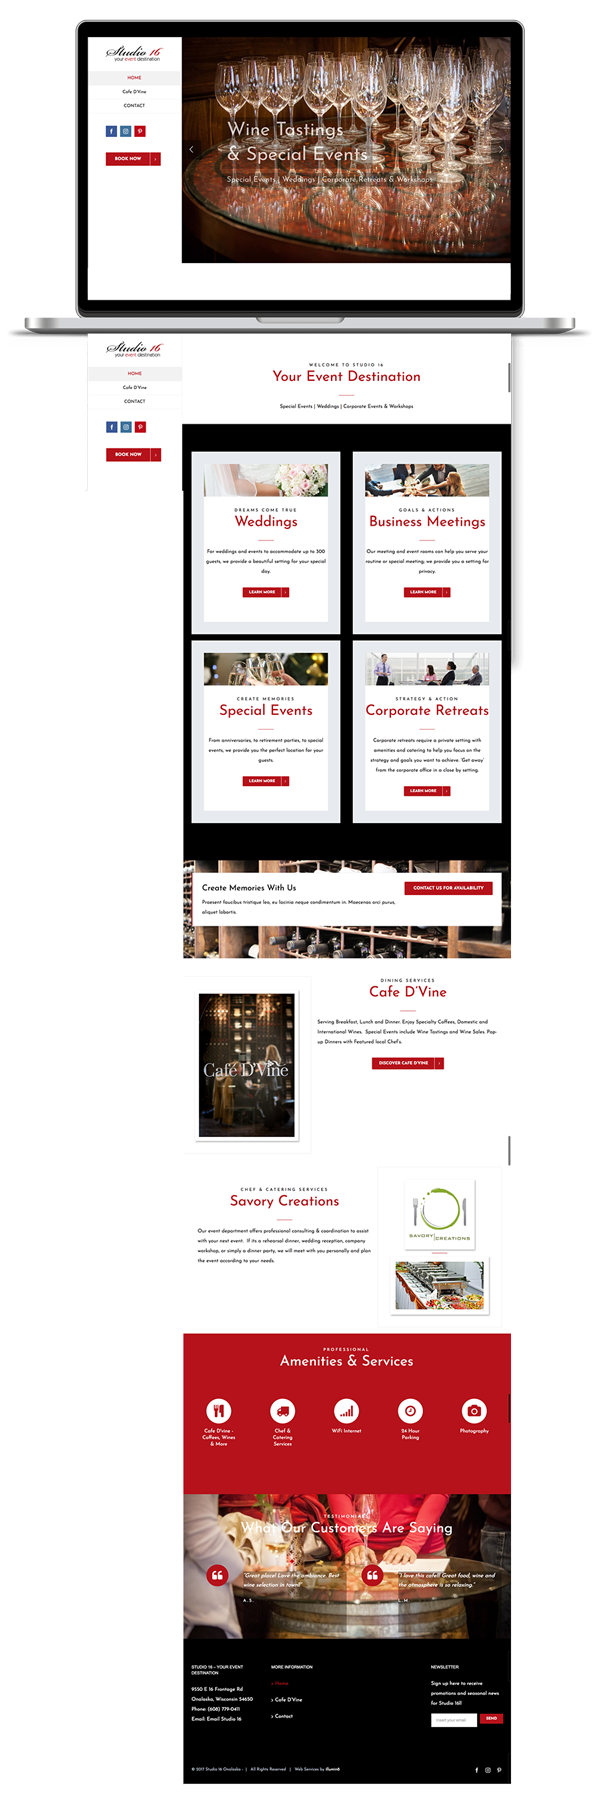 website for studio 16 your event destination created by illumin8